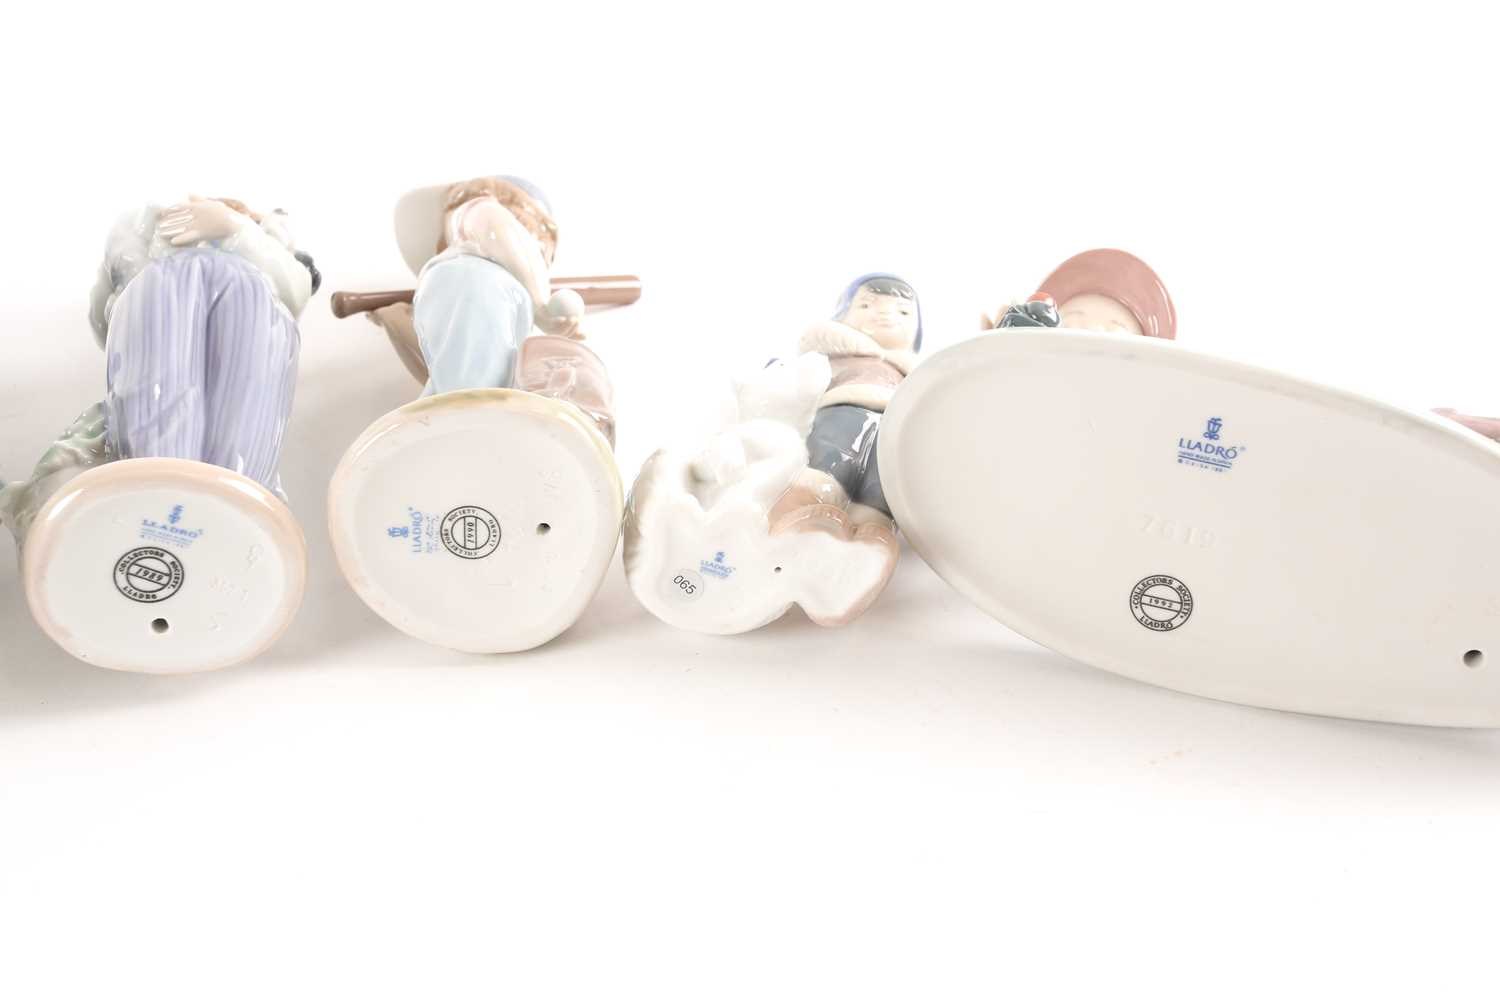 Seven Lladro figures, five of which are annual Lladro Society, tallest 26.5cmQty: 7Condition report: - Image 4 of 4